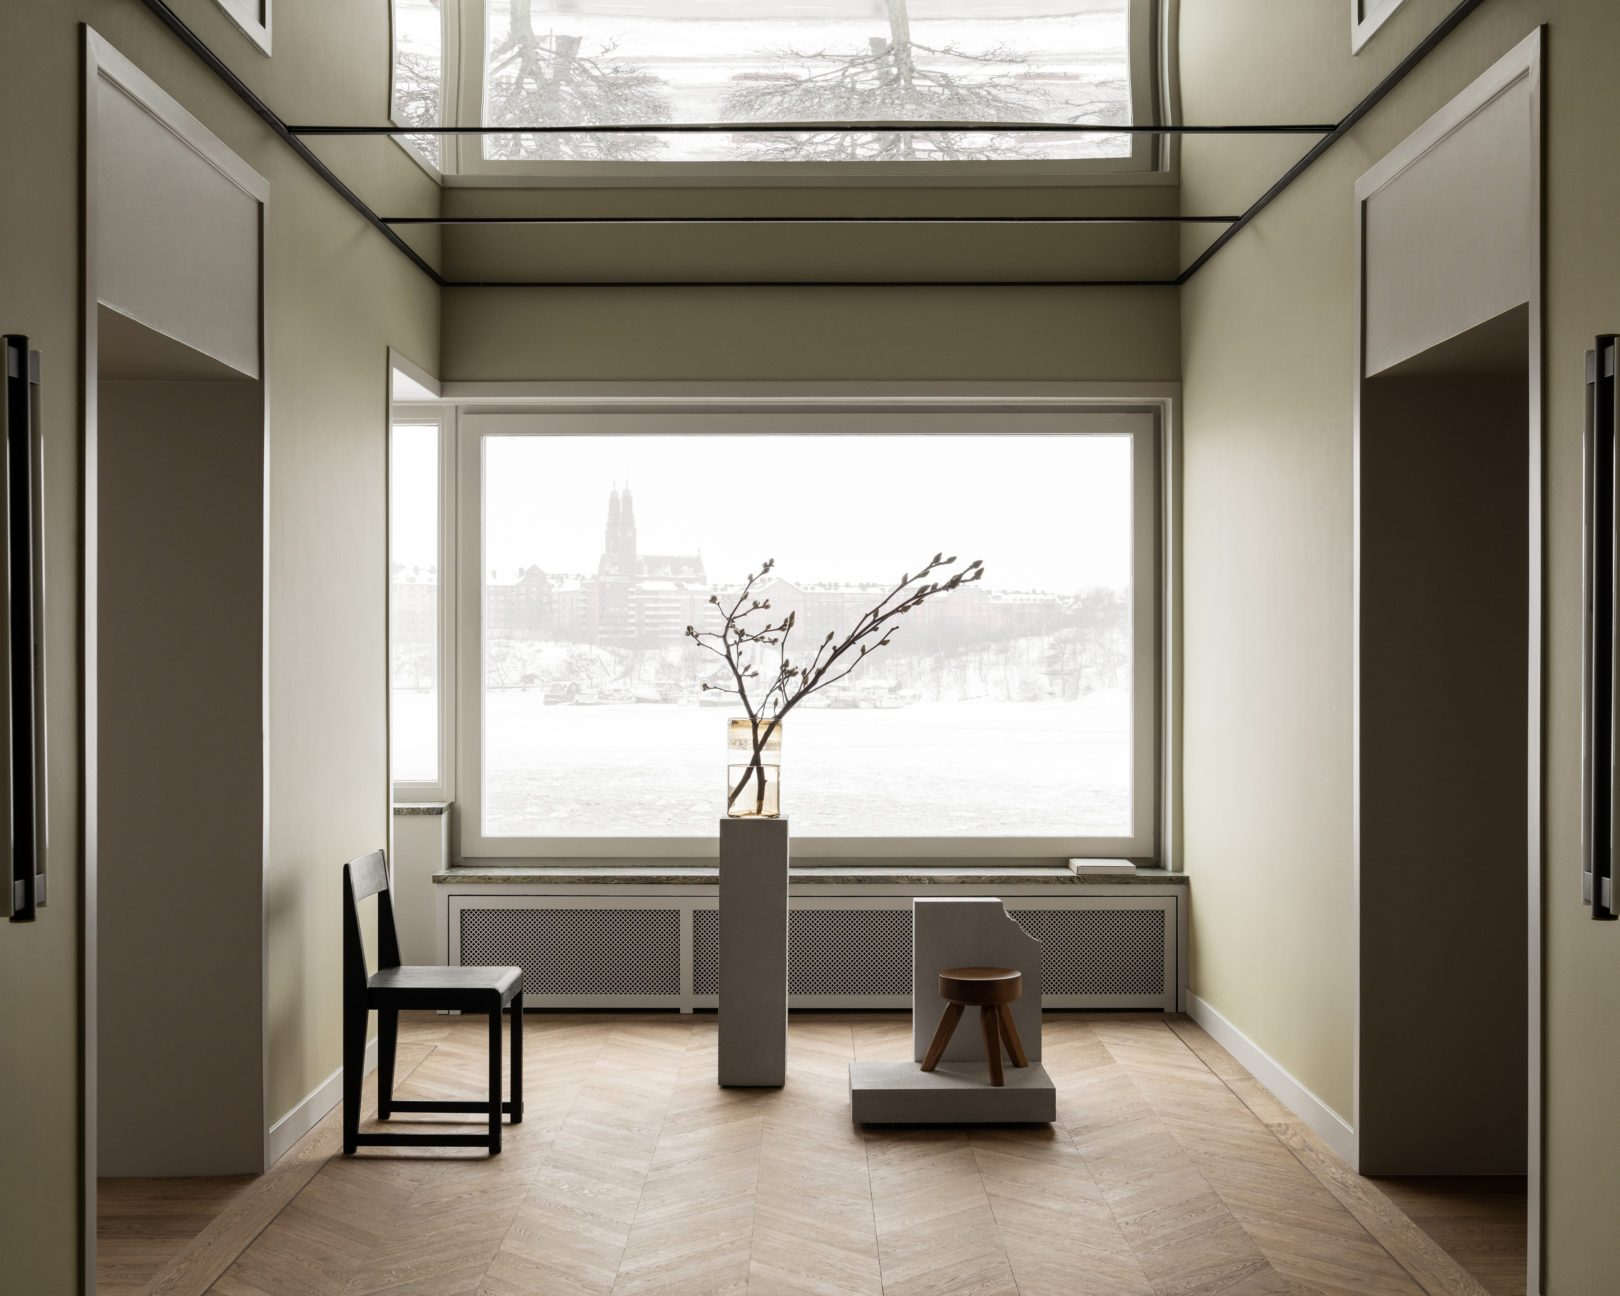 Frama presented 'Spatial Sensibilities' in collaboration with architect Andreas Martin-Löf.